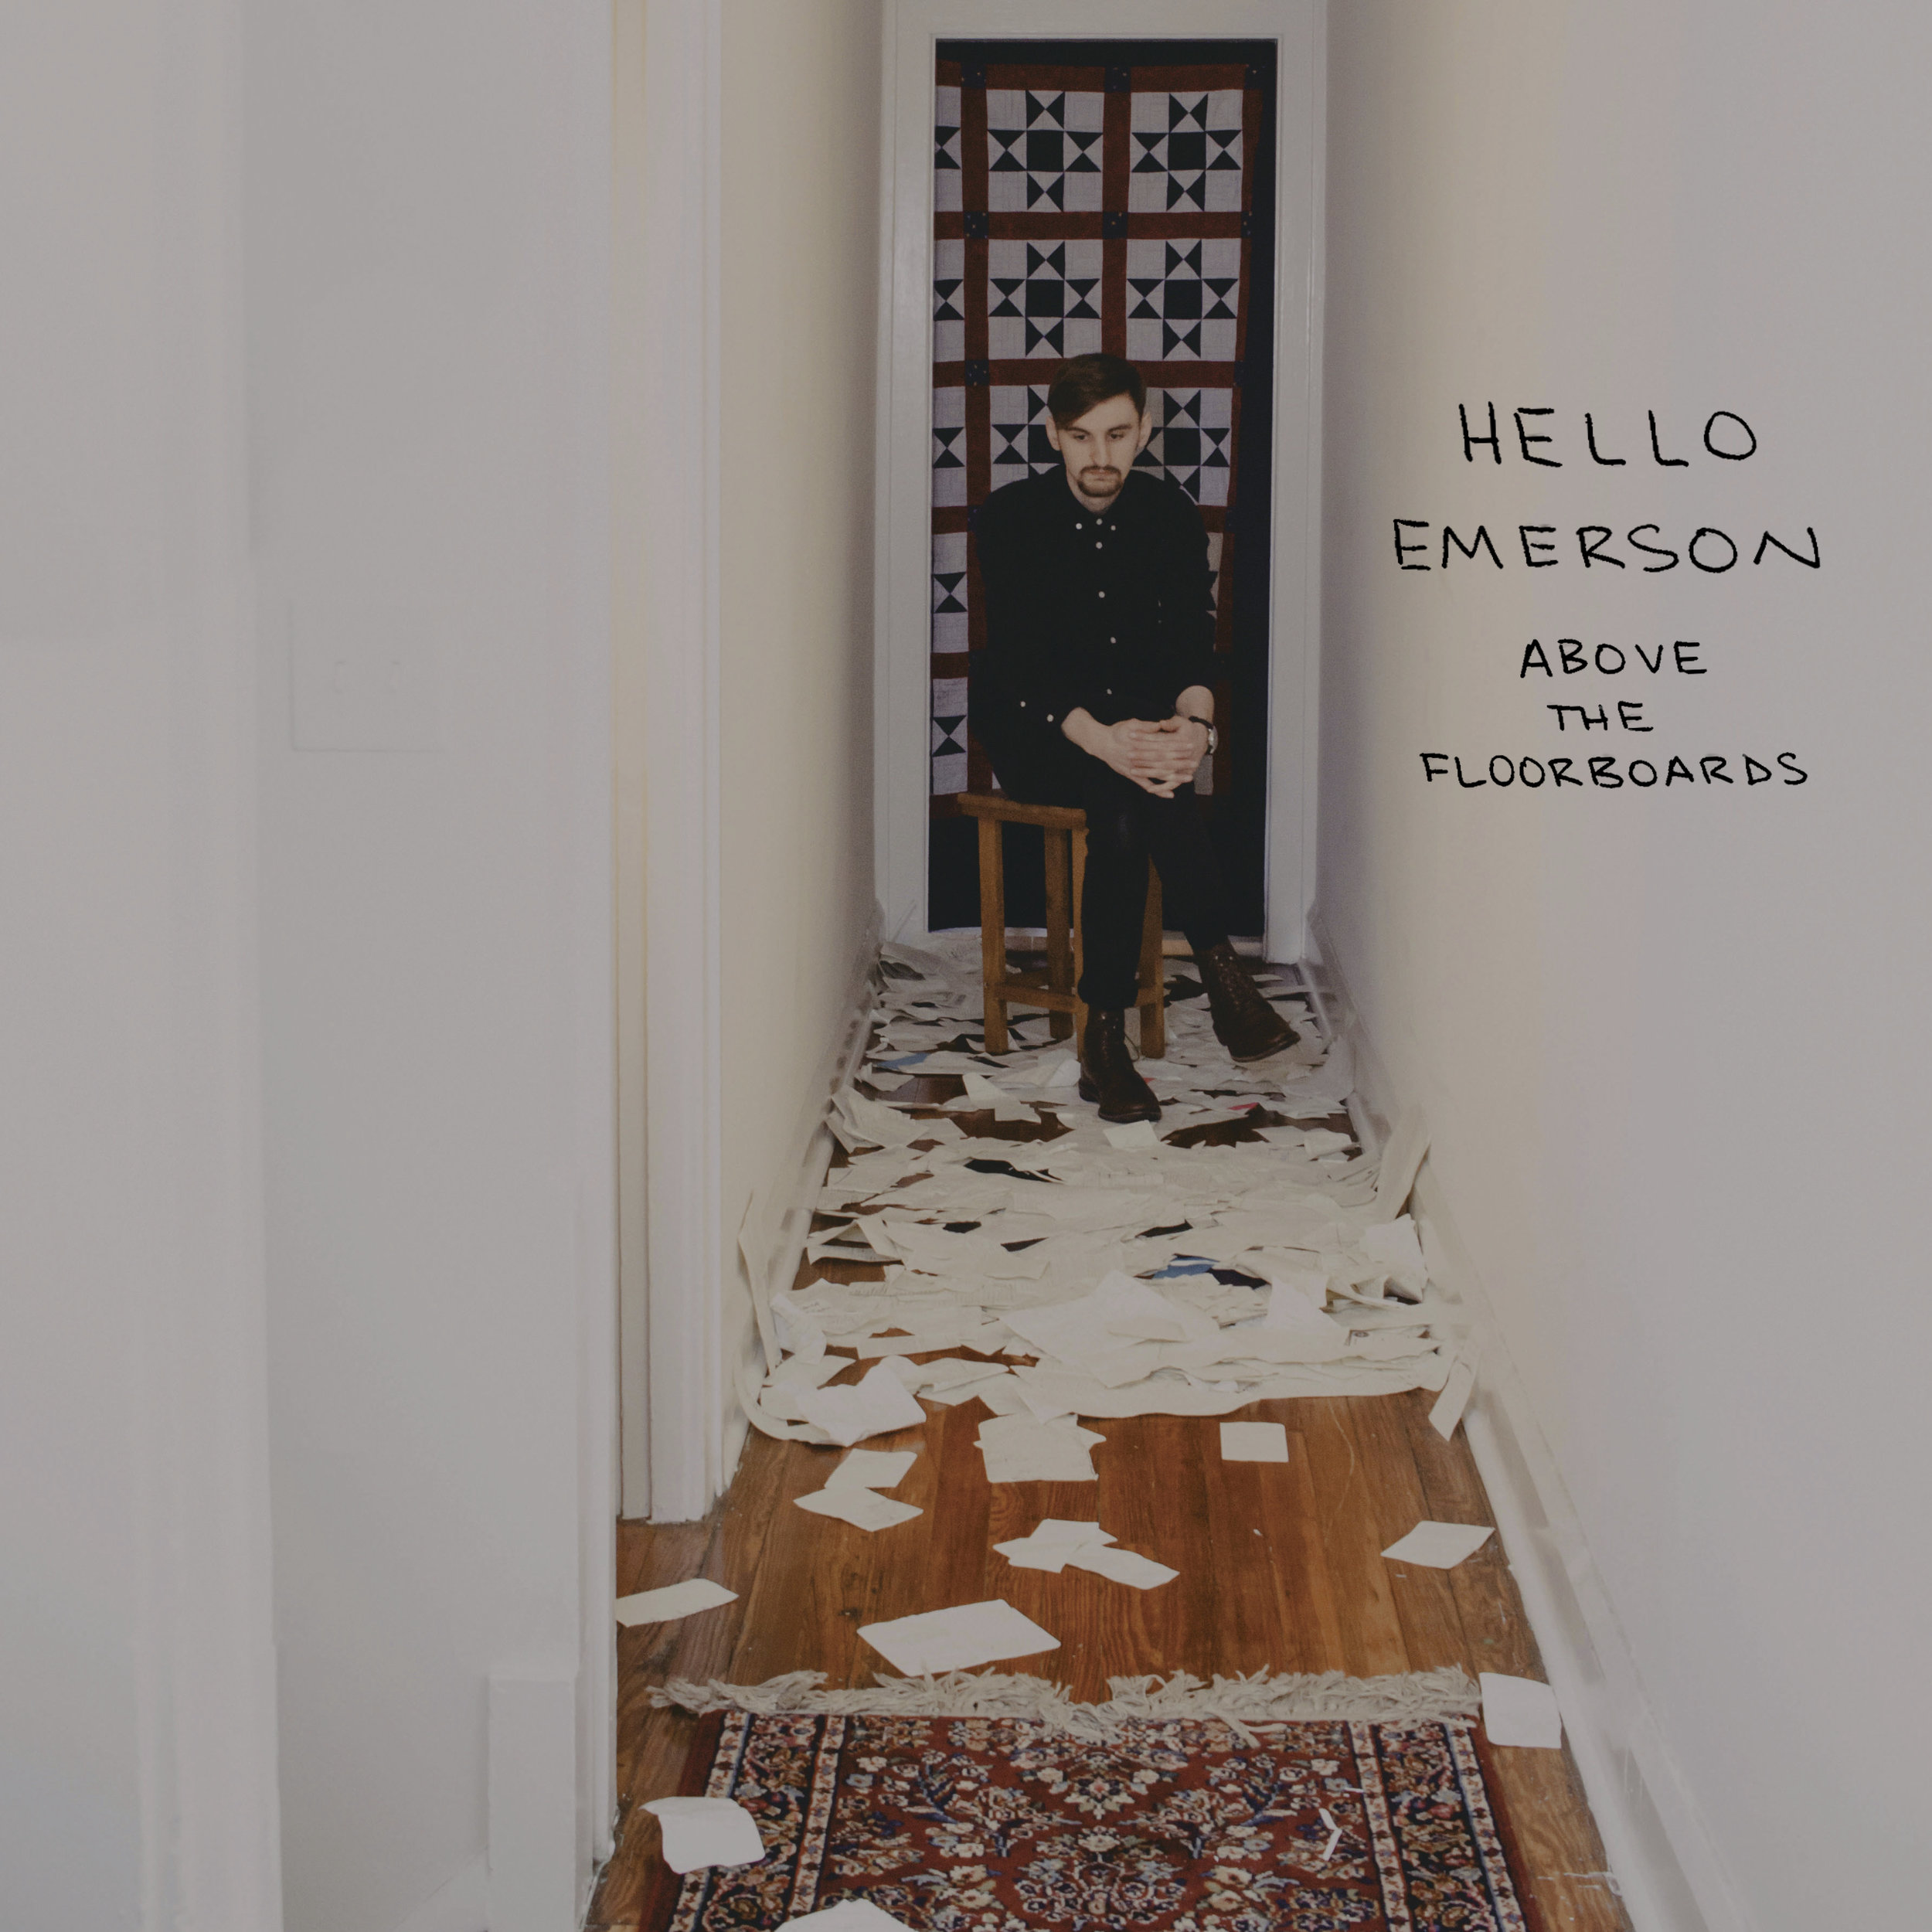 K&F Cover Art_Hello Emerson-Above the Floorboards.jpg